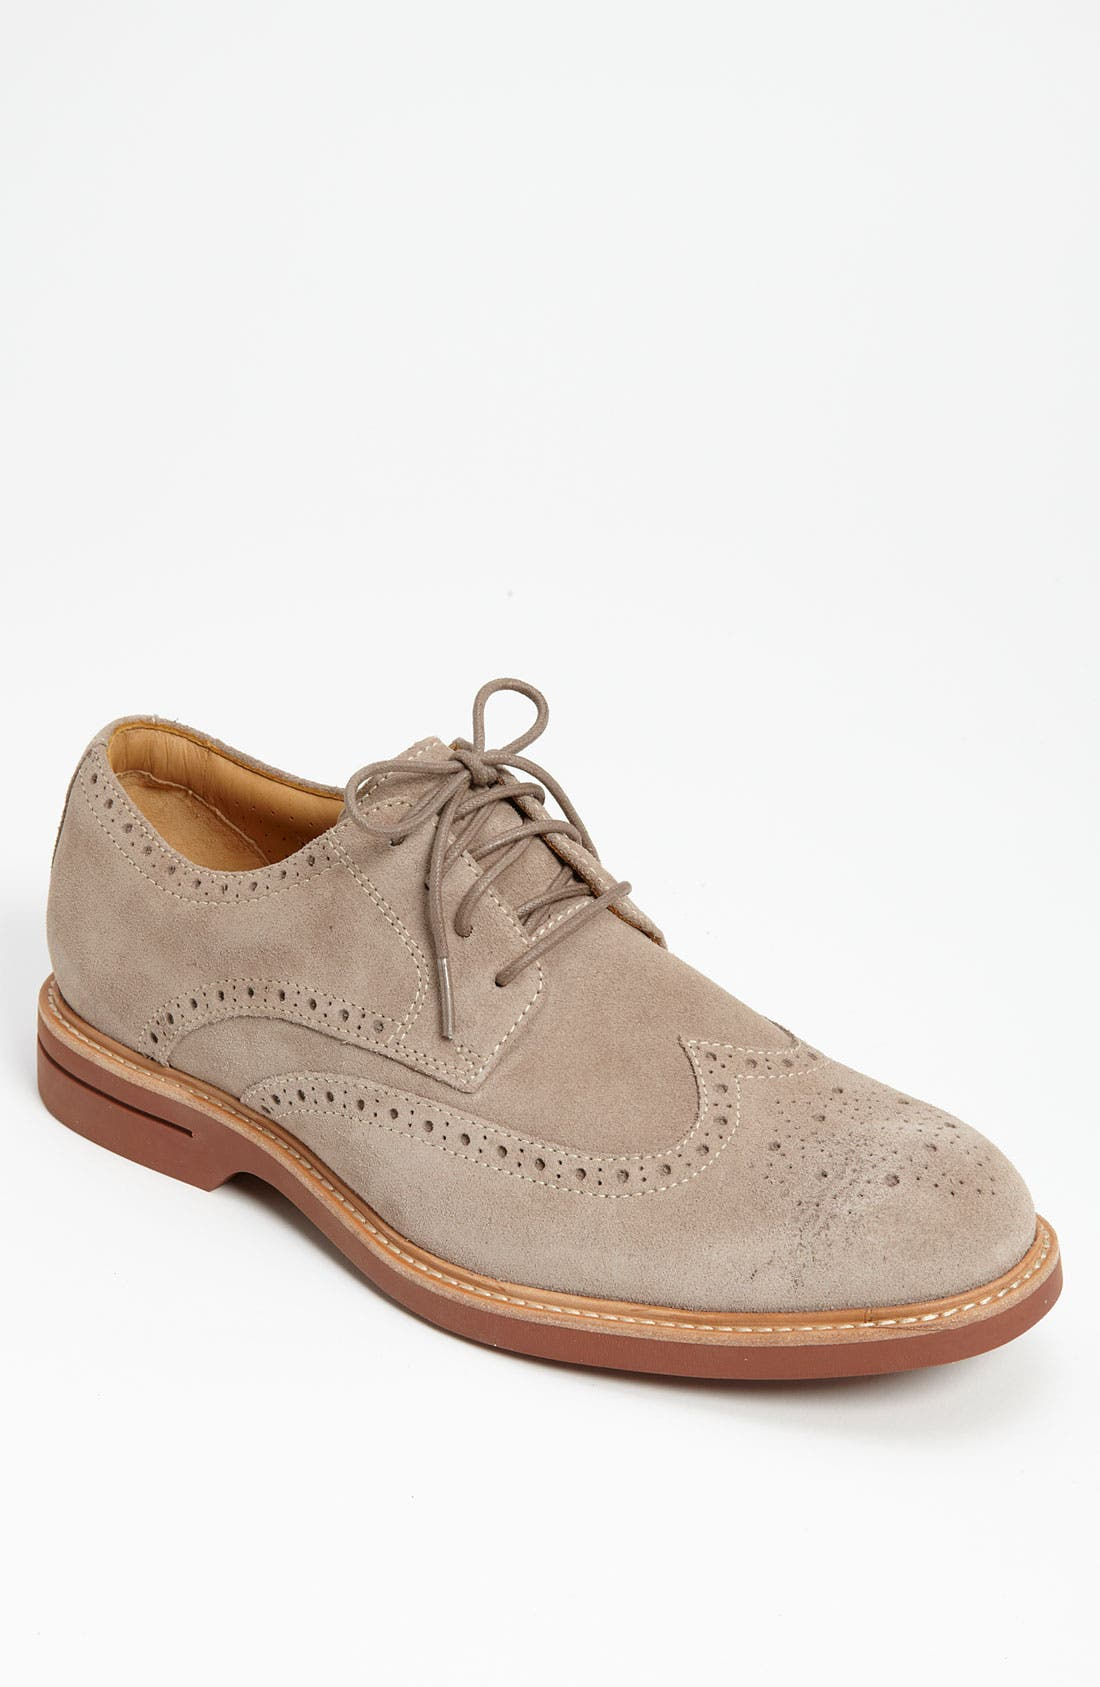 Alternate Image 1 Selected - Sperry Top-Sider® 'Gold Cup' Oxford